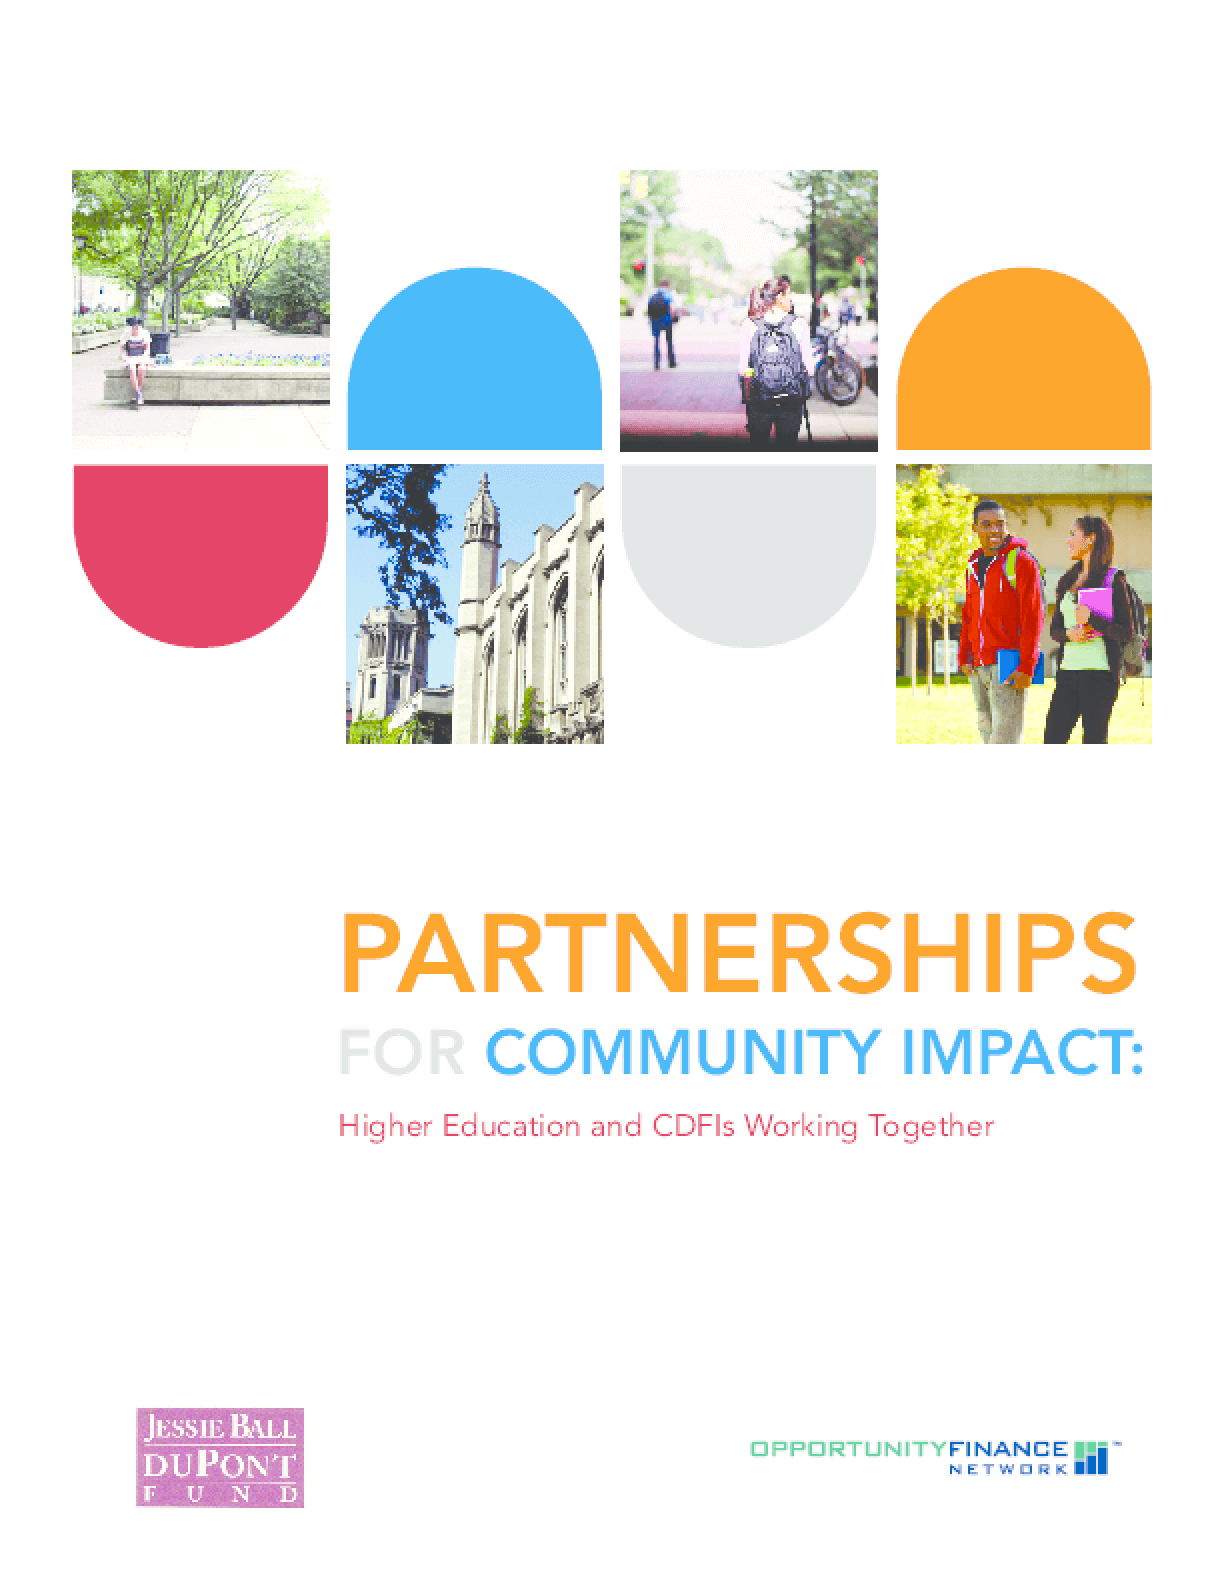 Partnerships for Community Impact: Higher Education and CDFIs Working Together